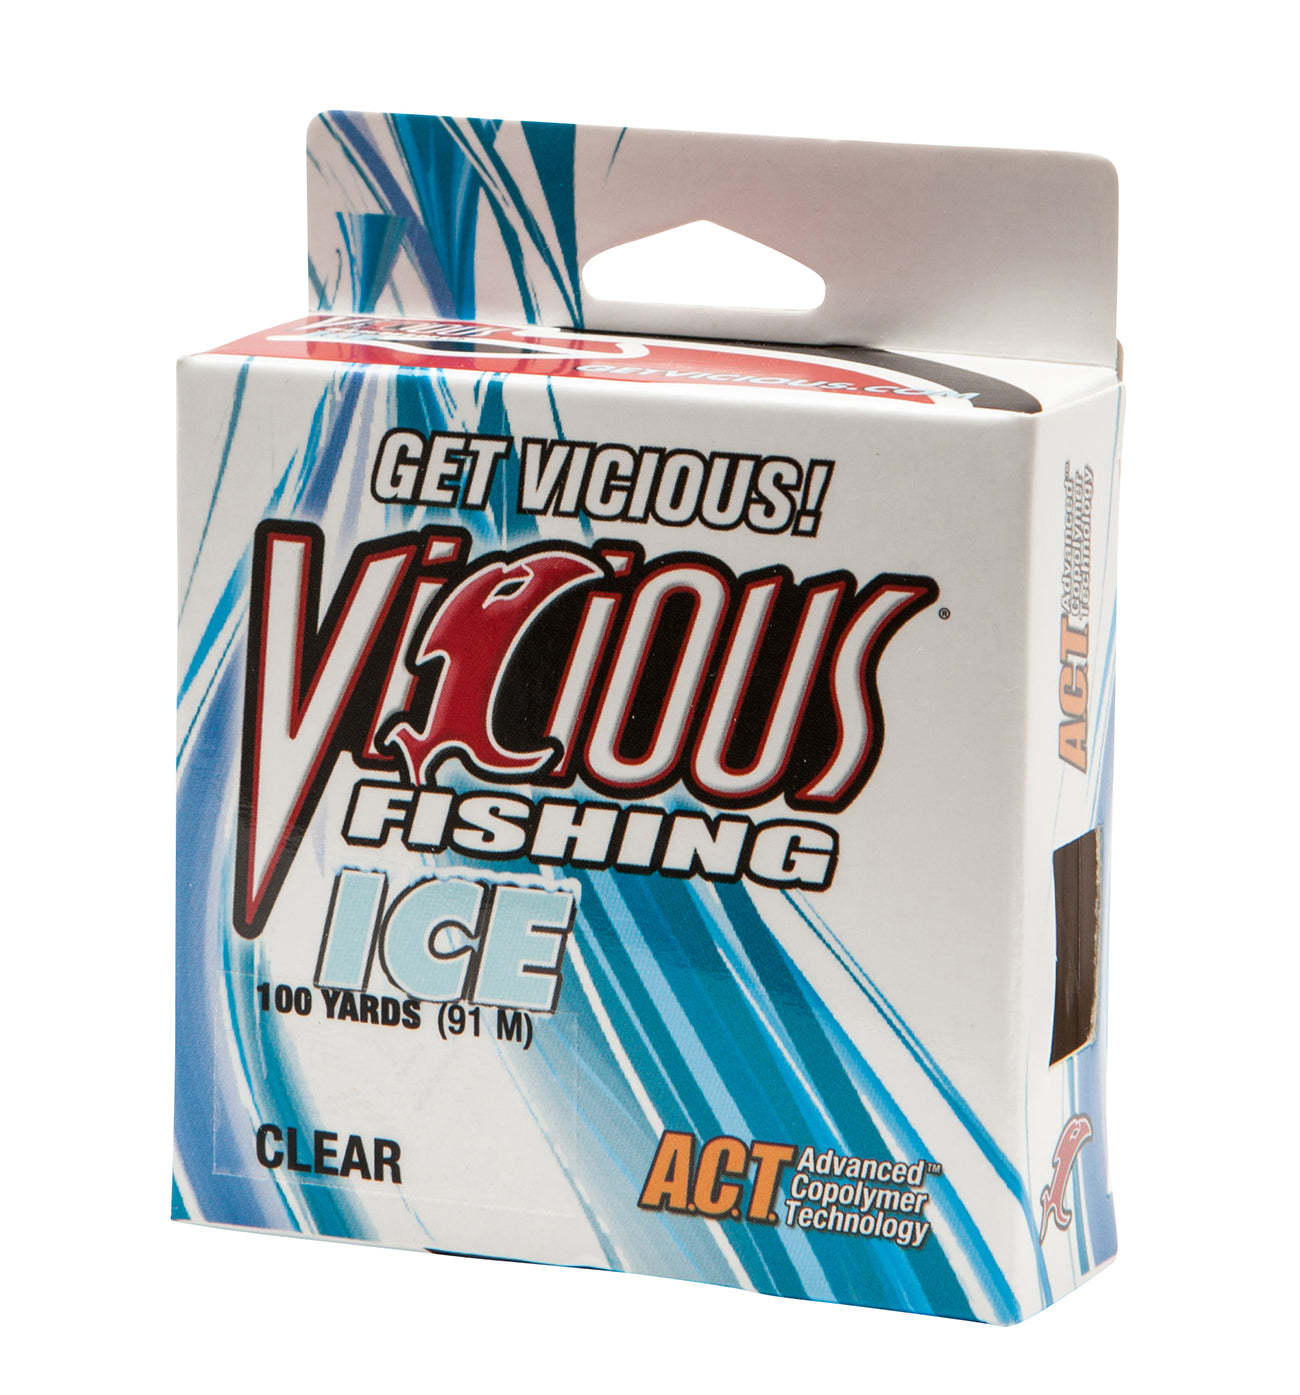 2lb Vicious Clear Ice - 100 Yards